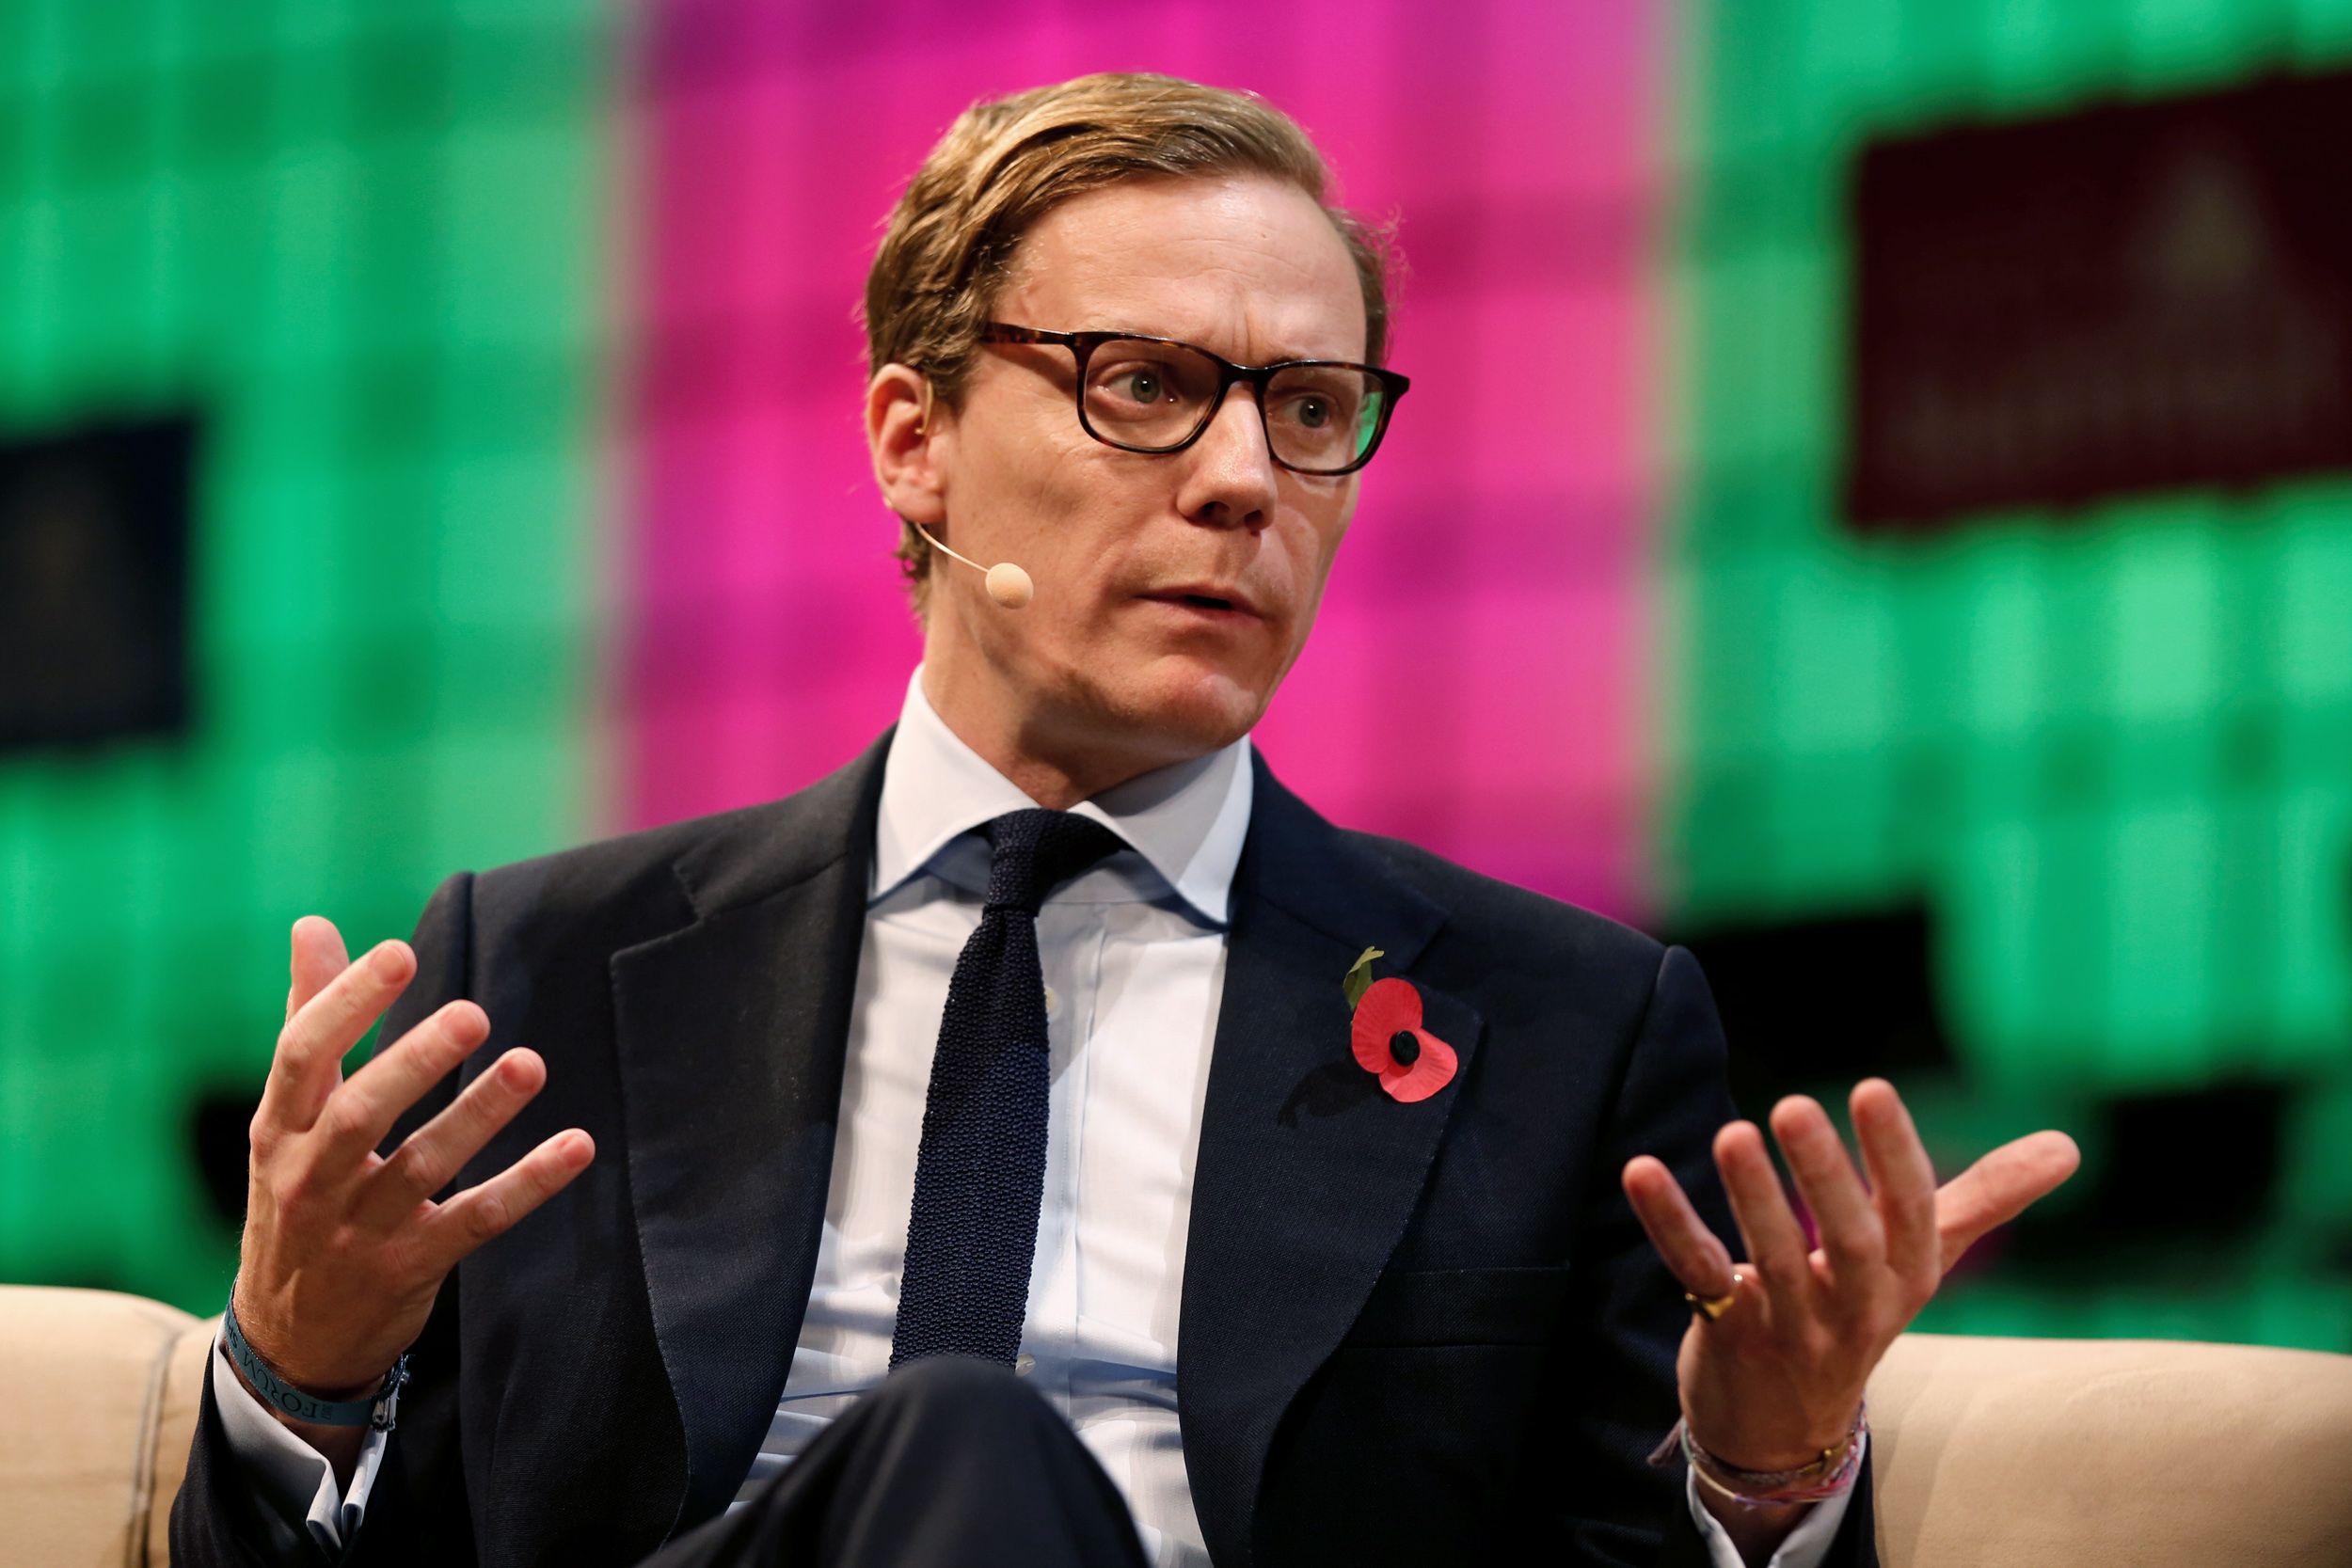 Cambridge Analytica chief appears to have misled Parliament on data and Russia